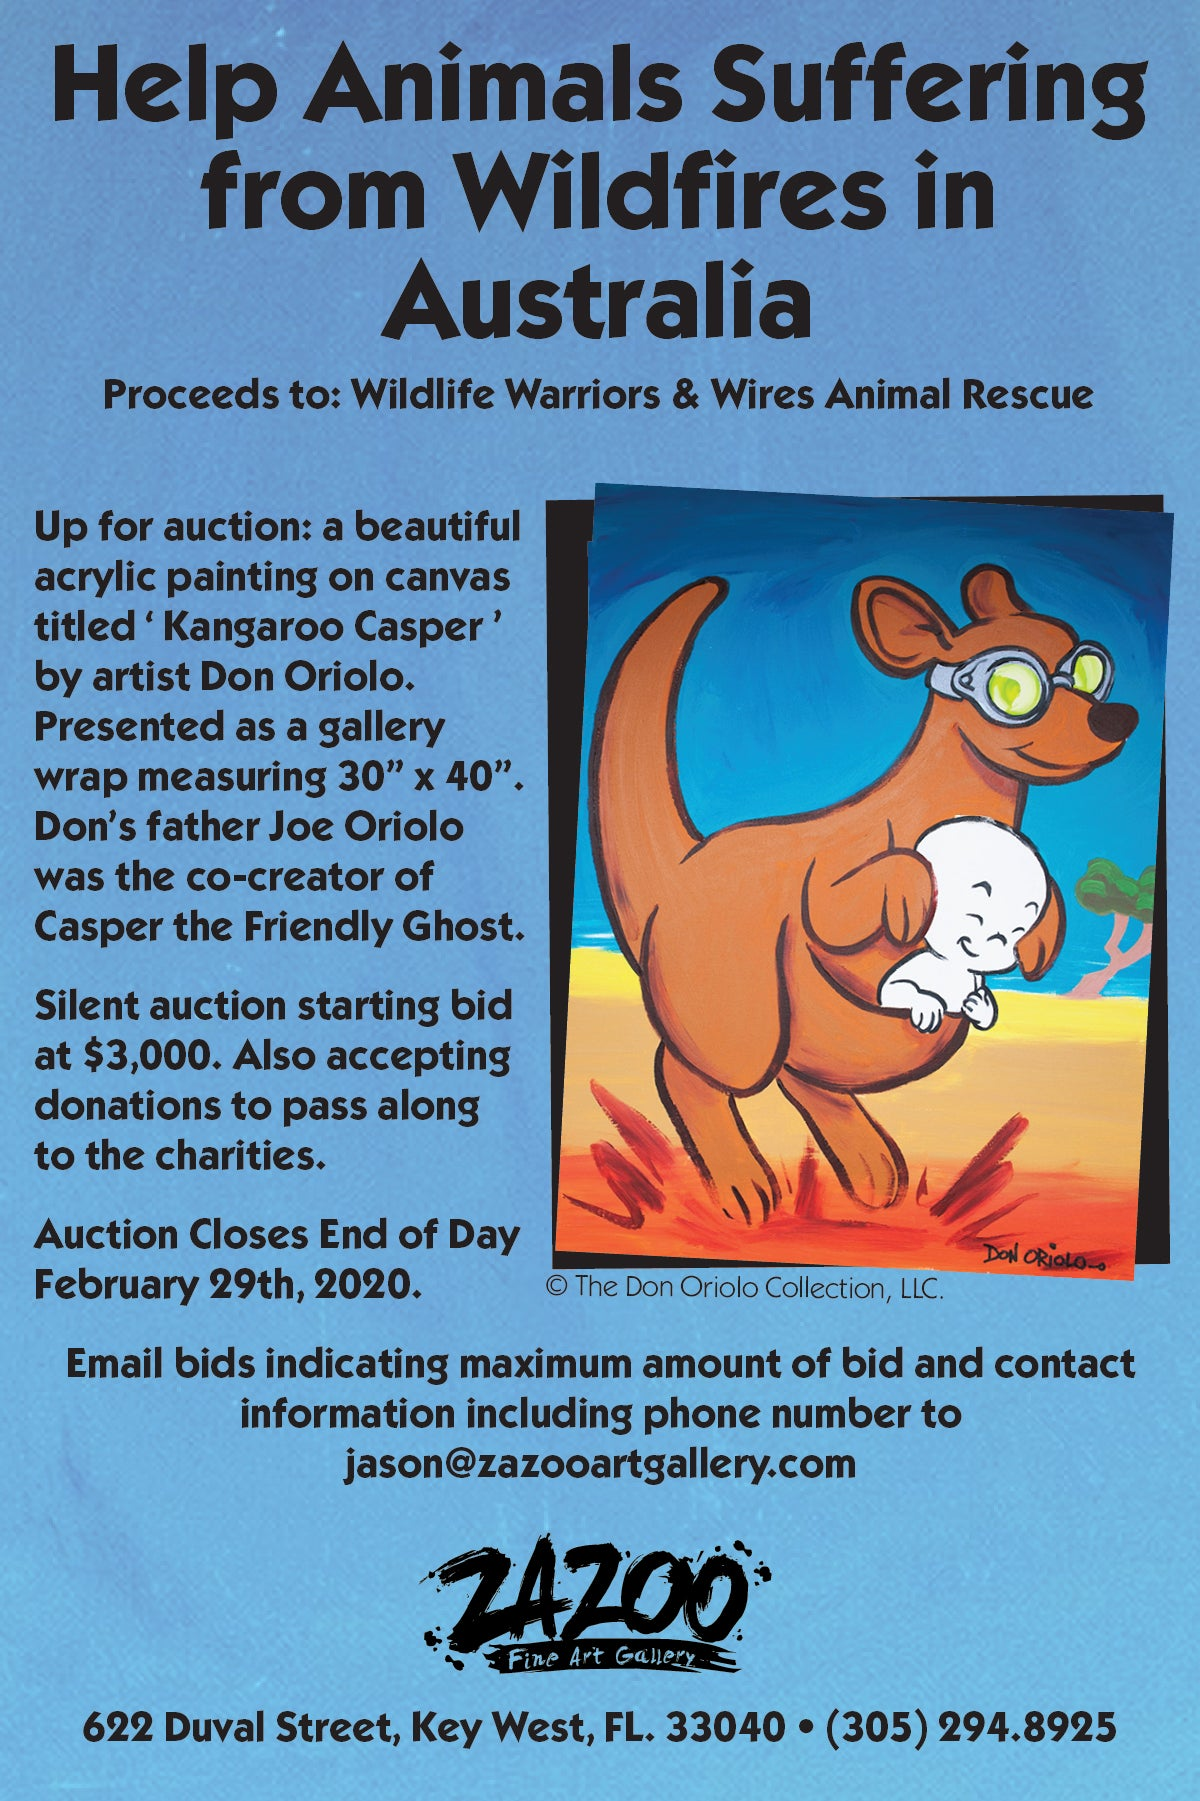 Help Animals Suffering from Wildfires in Australia